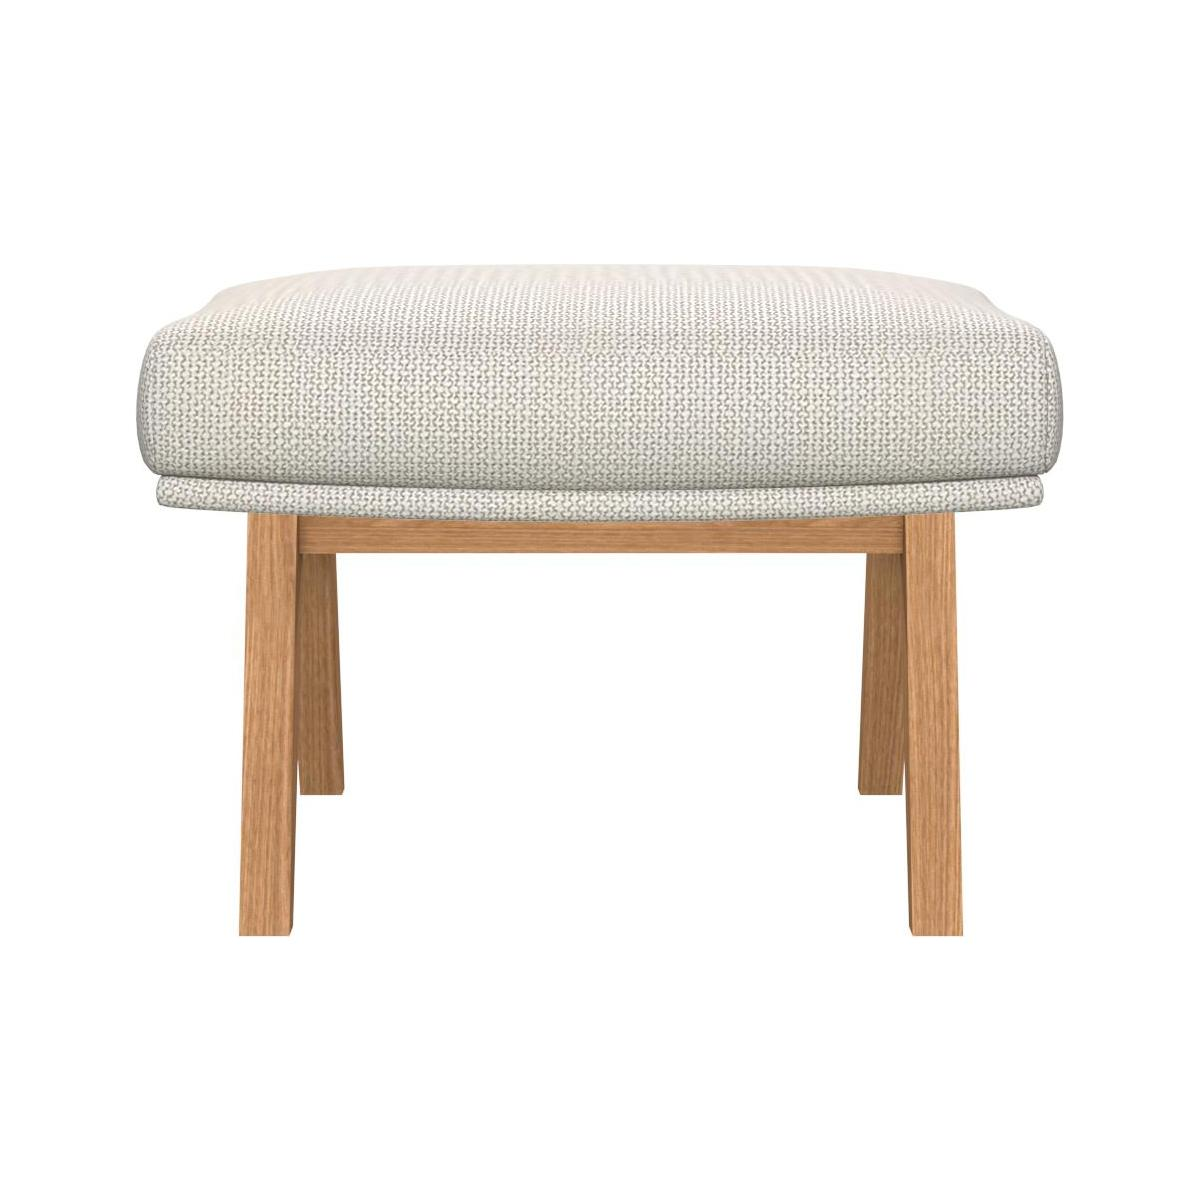 Footstool in Fasoli fabric, snow white with oak legs n°3